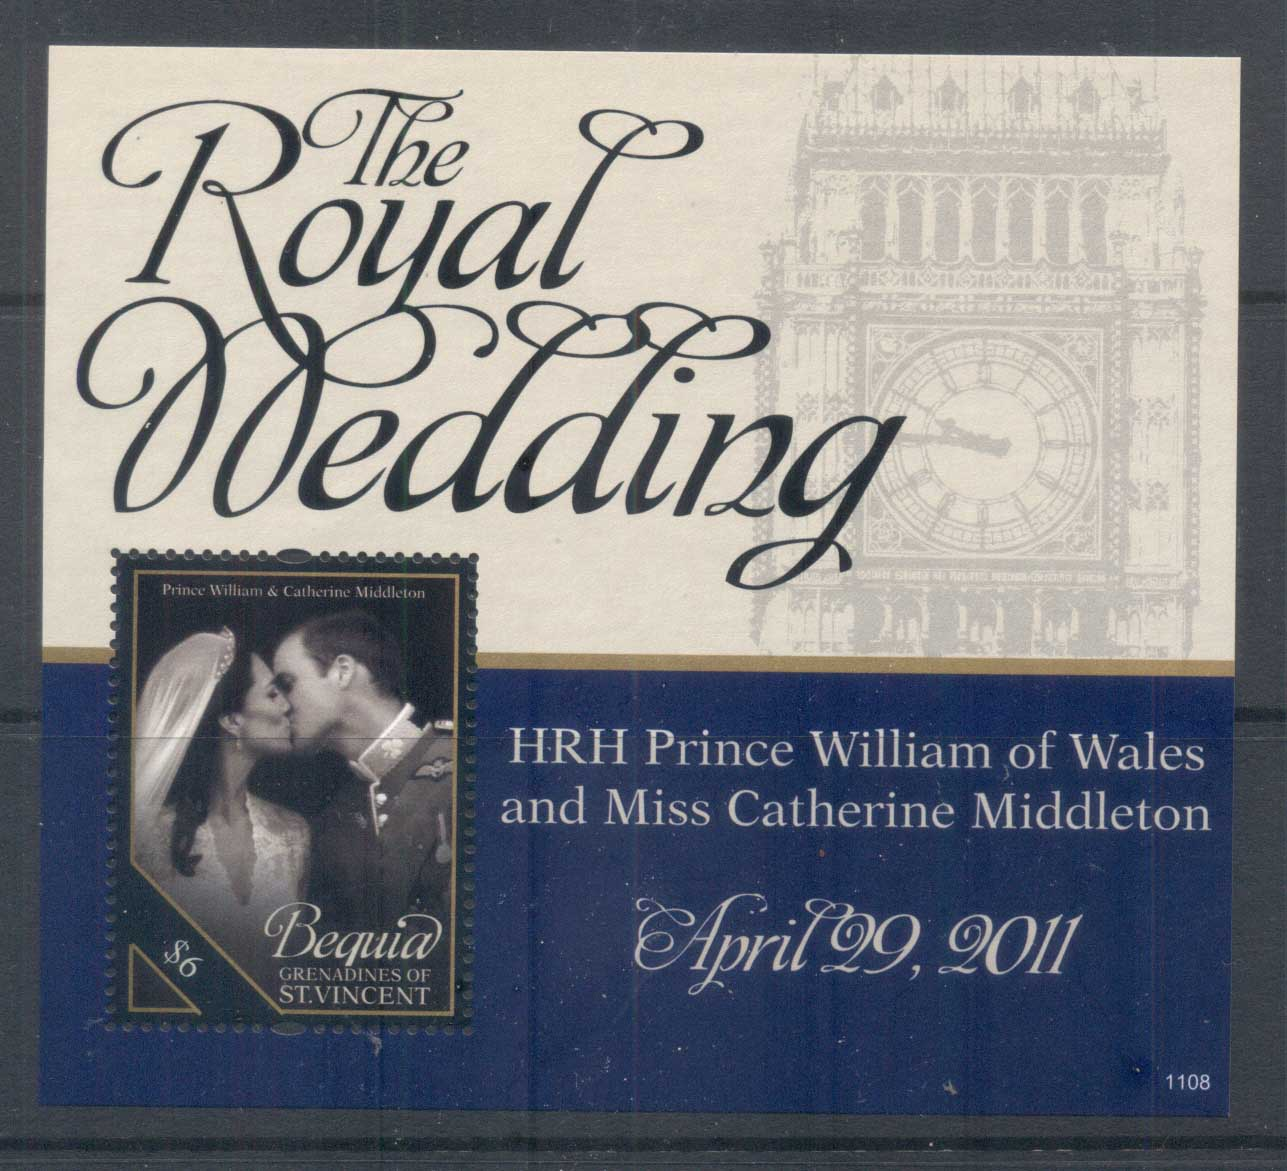 St Vincent Bequia 2011 Royal Wedding William & Kate #1108 $6 MS MUH